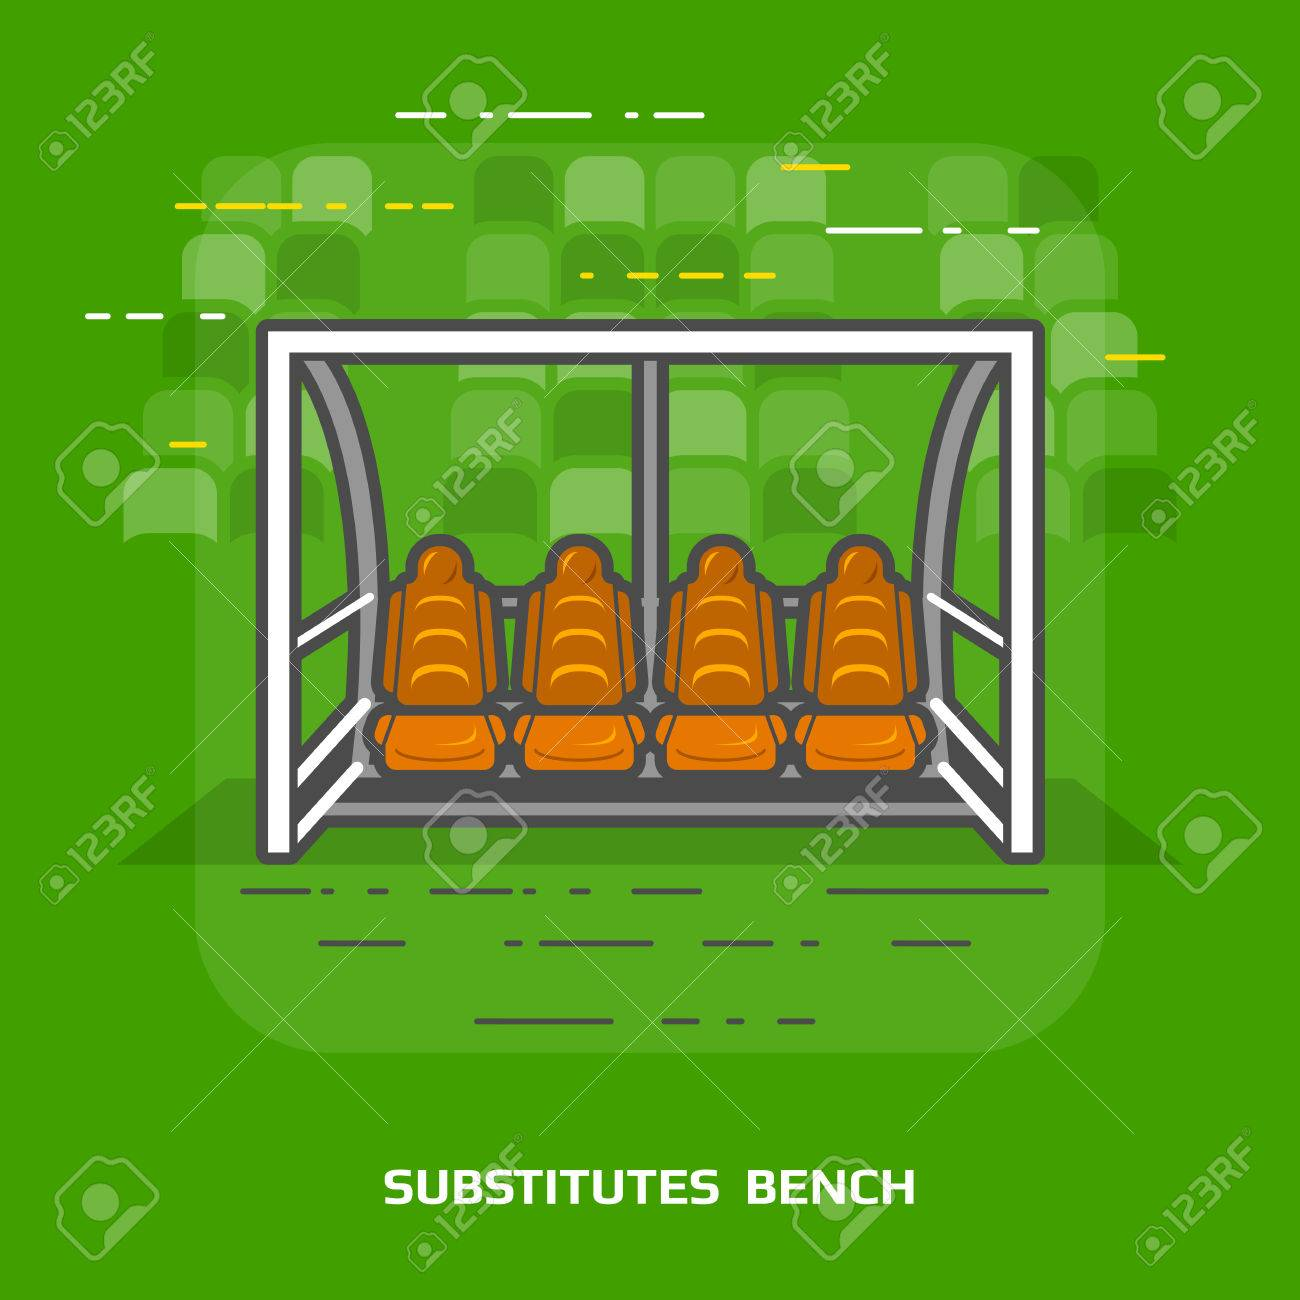 Flat illustration of soccer substitutes bench against green